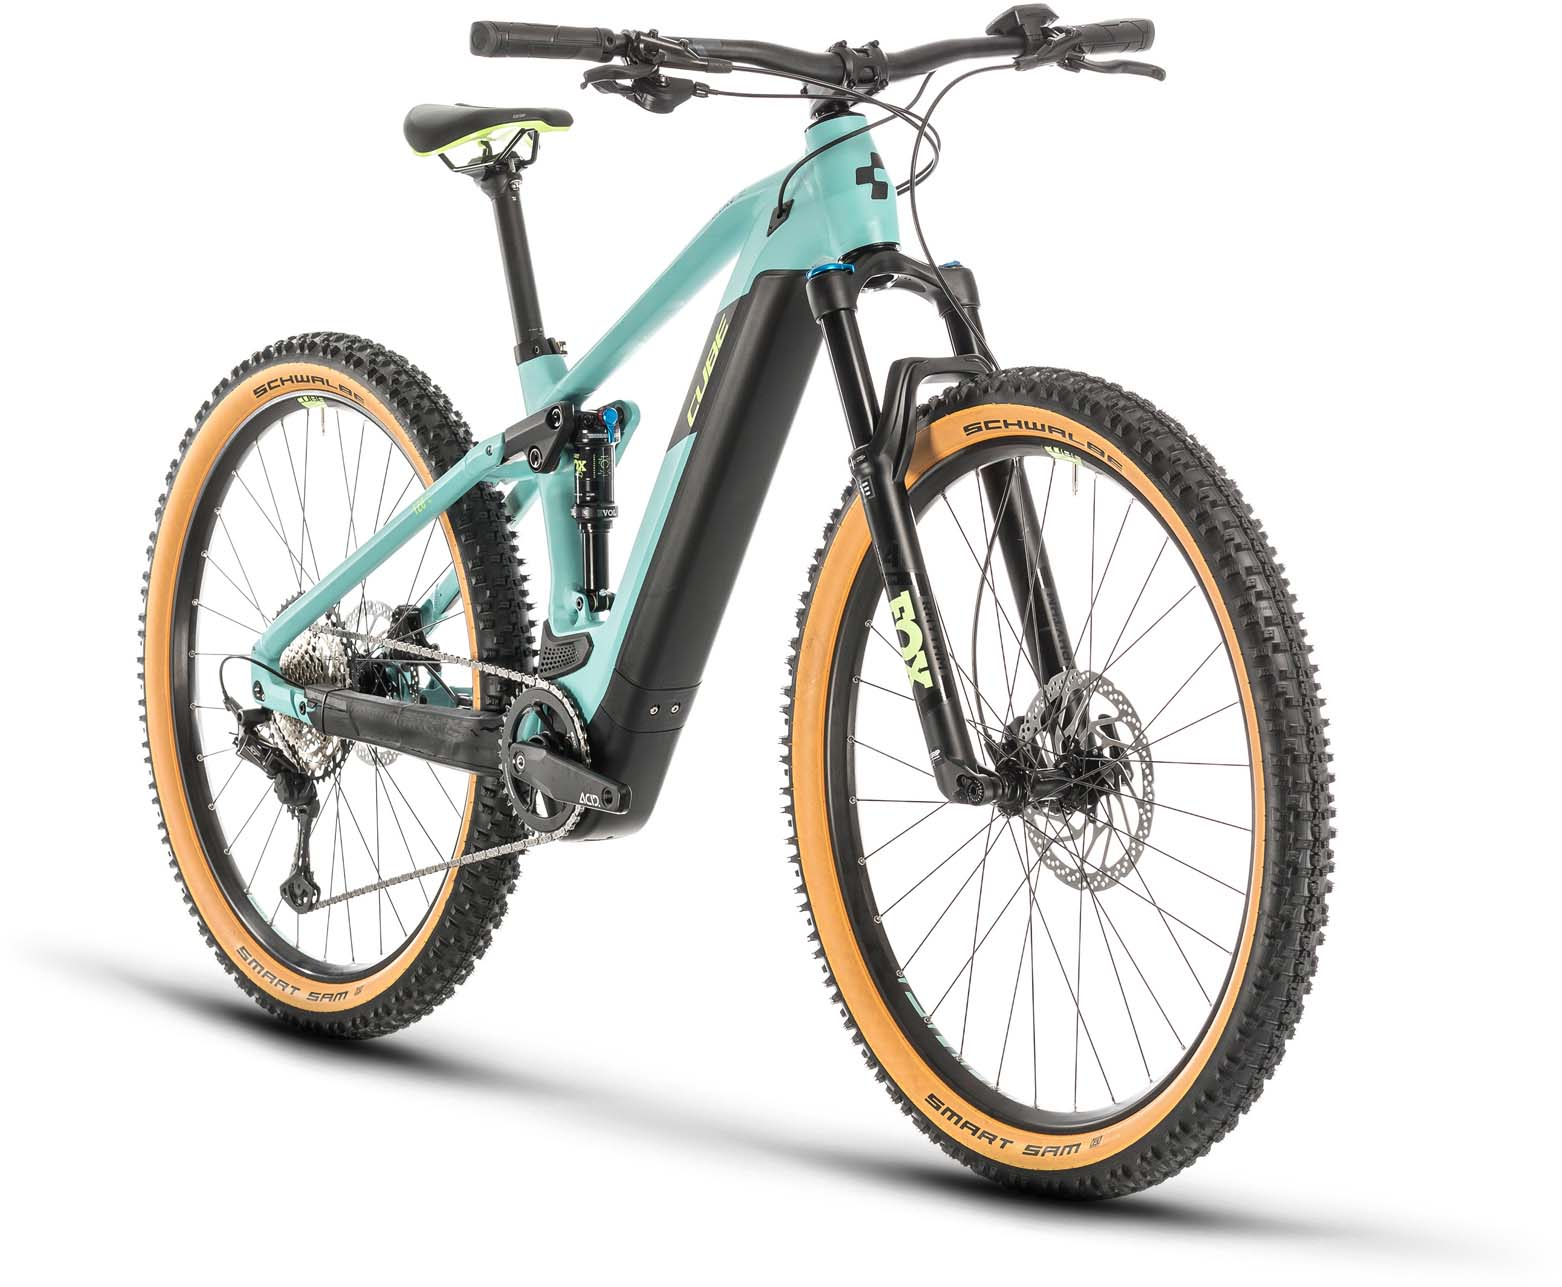 cube stereo hybrid 120 race 625 29 frozengreen n green 2020 e bike fully mountainbike cheap at. Black Bedroom Furniture Sets. Home Design Ideas